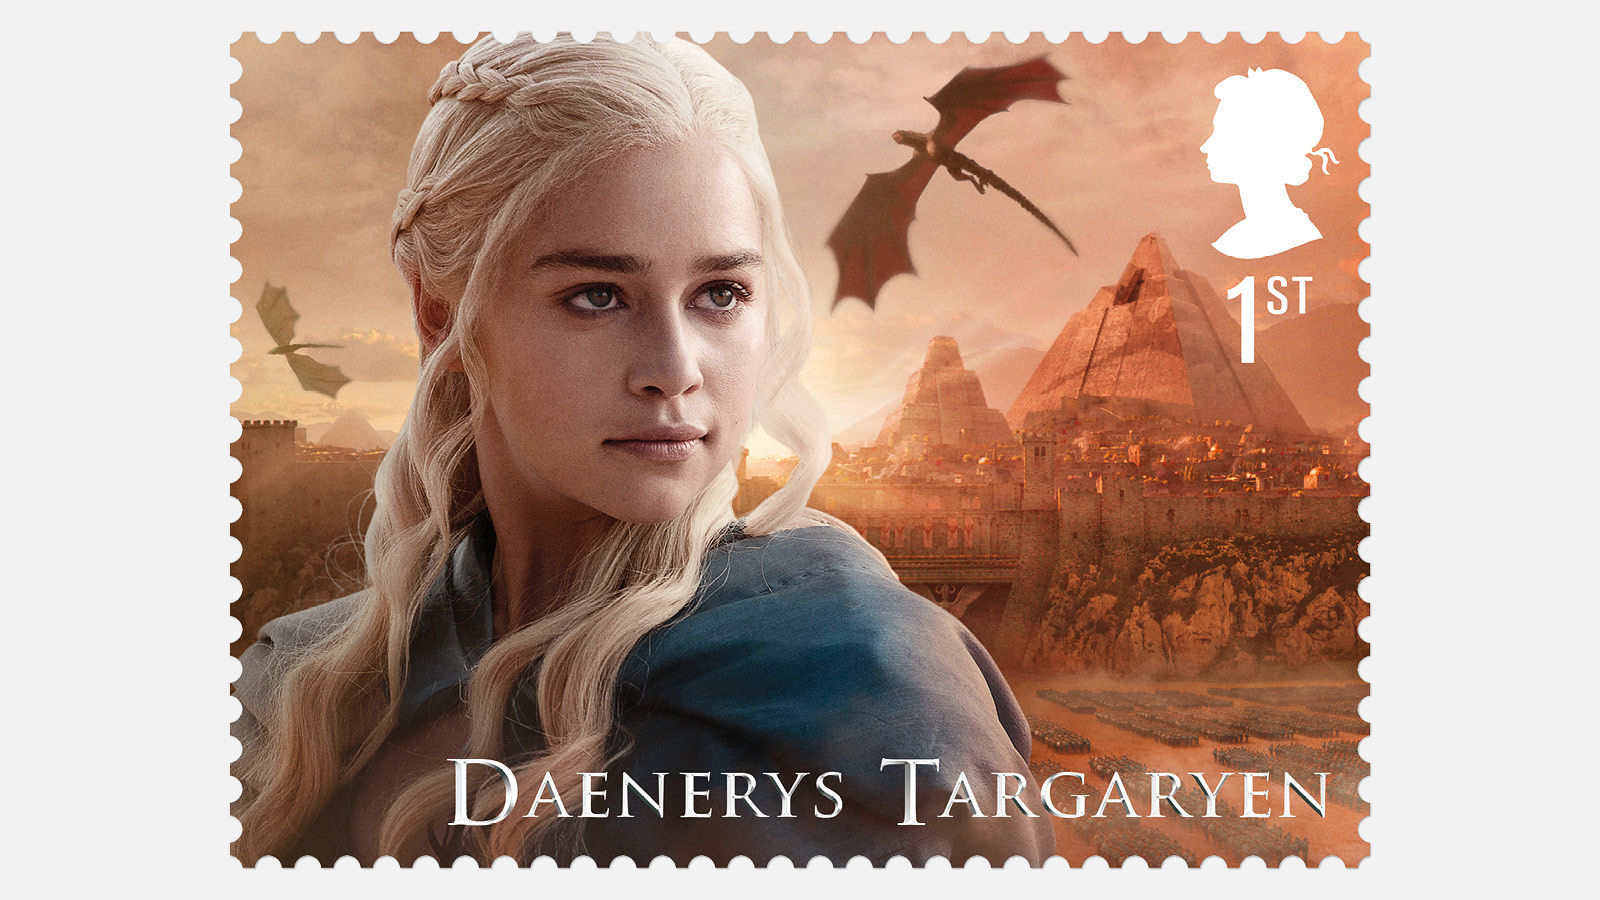 Royal Mail reveals Game of Thrones stamp collection